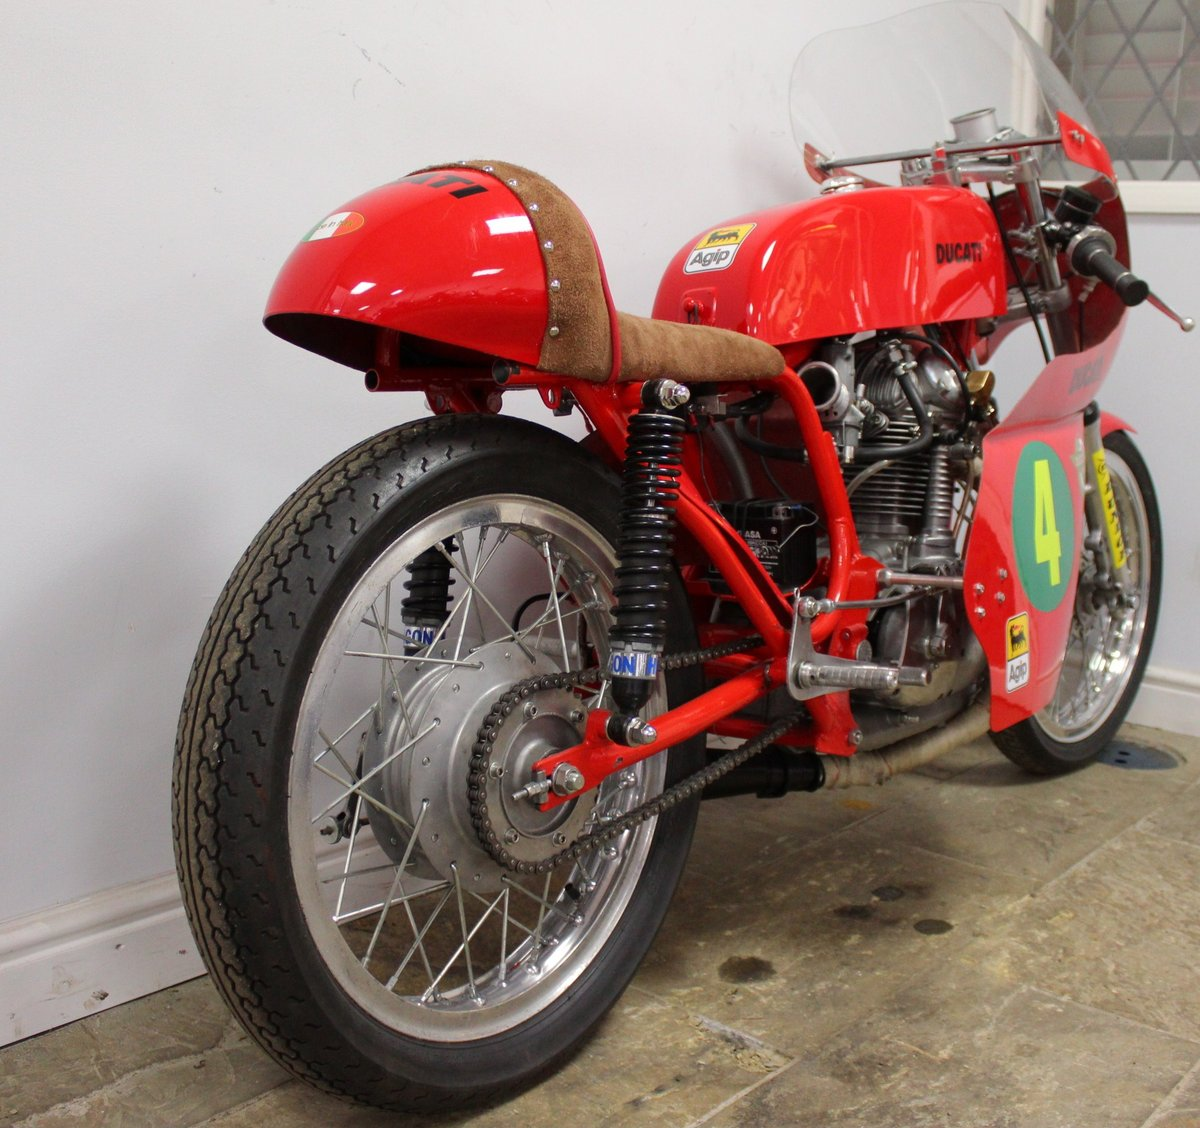 c1970 Ducati 250 cc Road Racer , Beautiful Period Race Bike SOLD (picture 5 of 6)